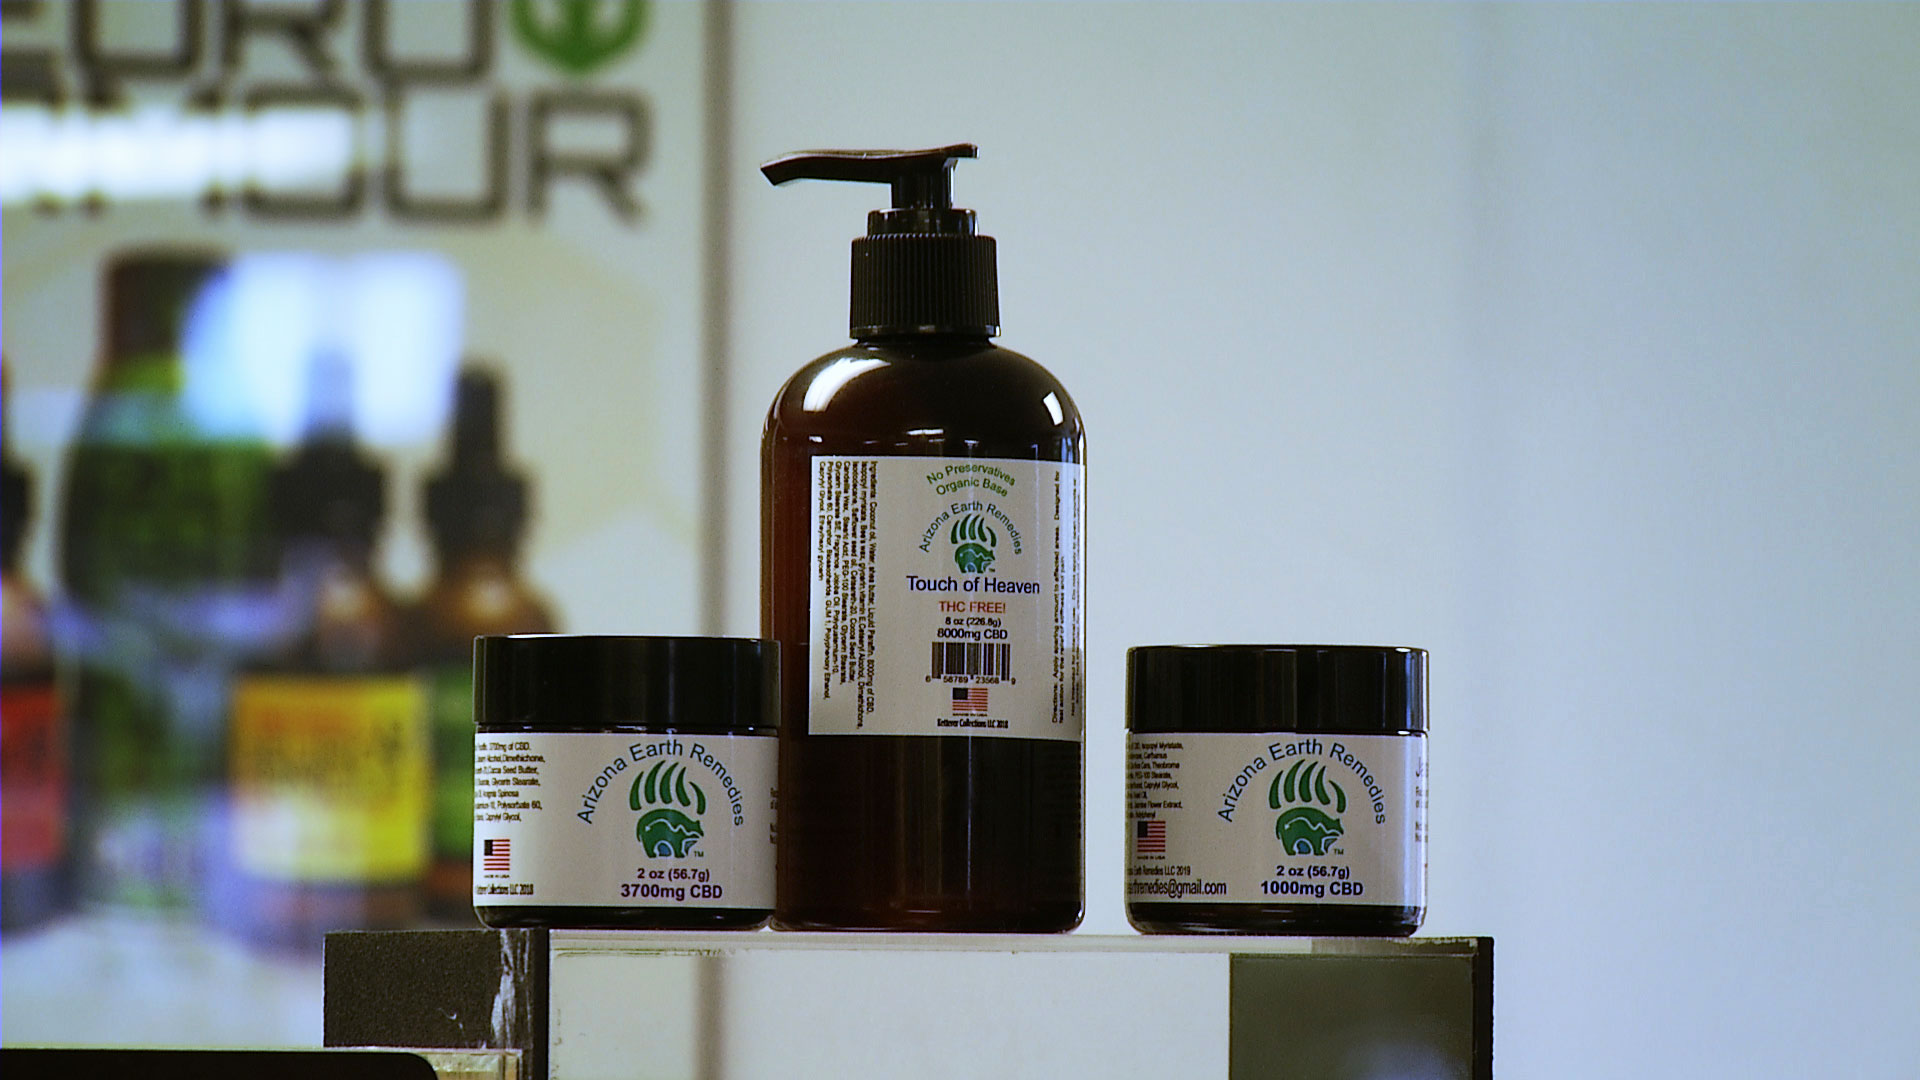 Different products infused with CBD, or cannabidiol.